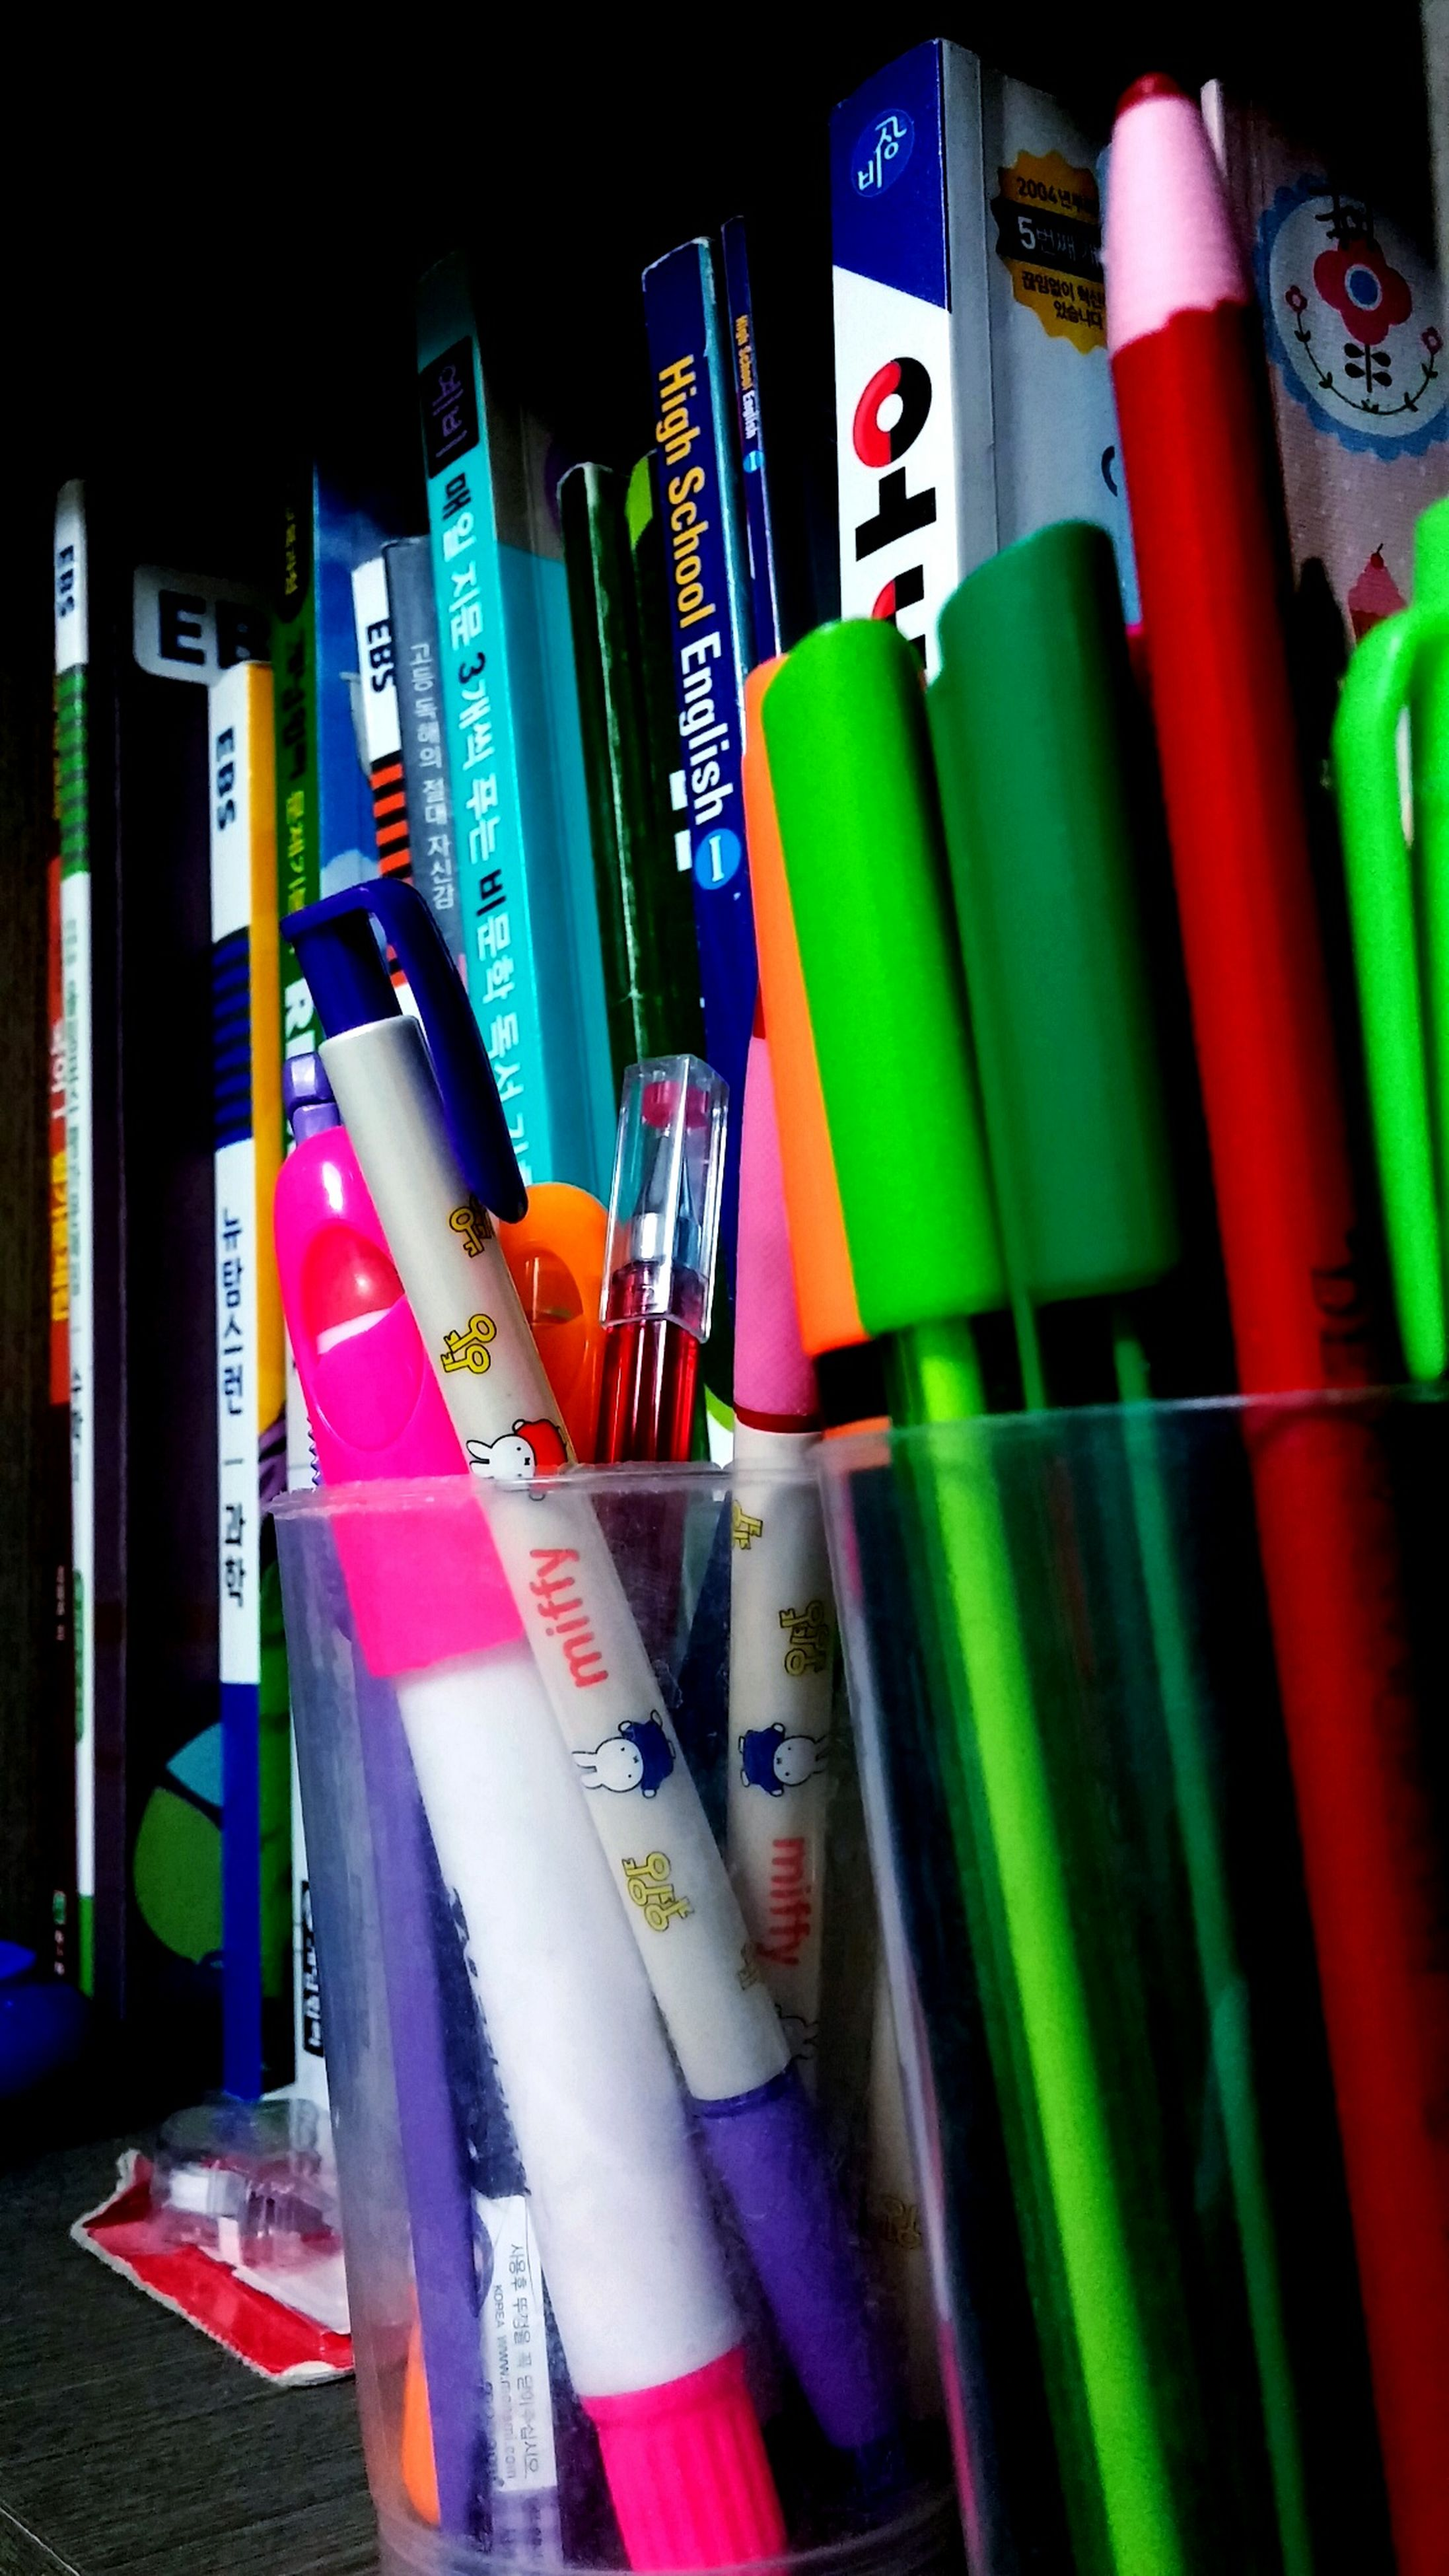 multi colored, variation, indoors, colorful, large group of objects, choice, still life, in a row, arrangement, education, pencil, abundance, side by side, collection, high angle view, order, no people, colored pencil, close-up, group of objects